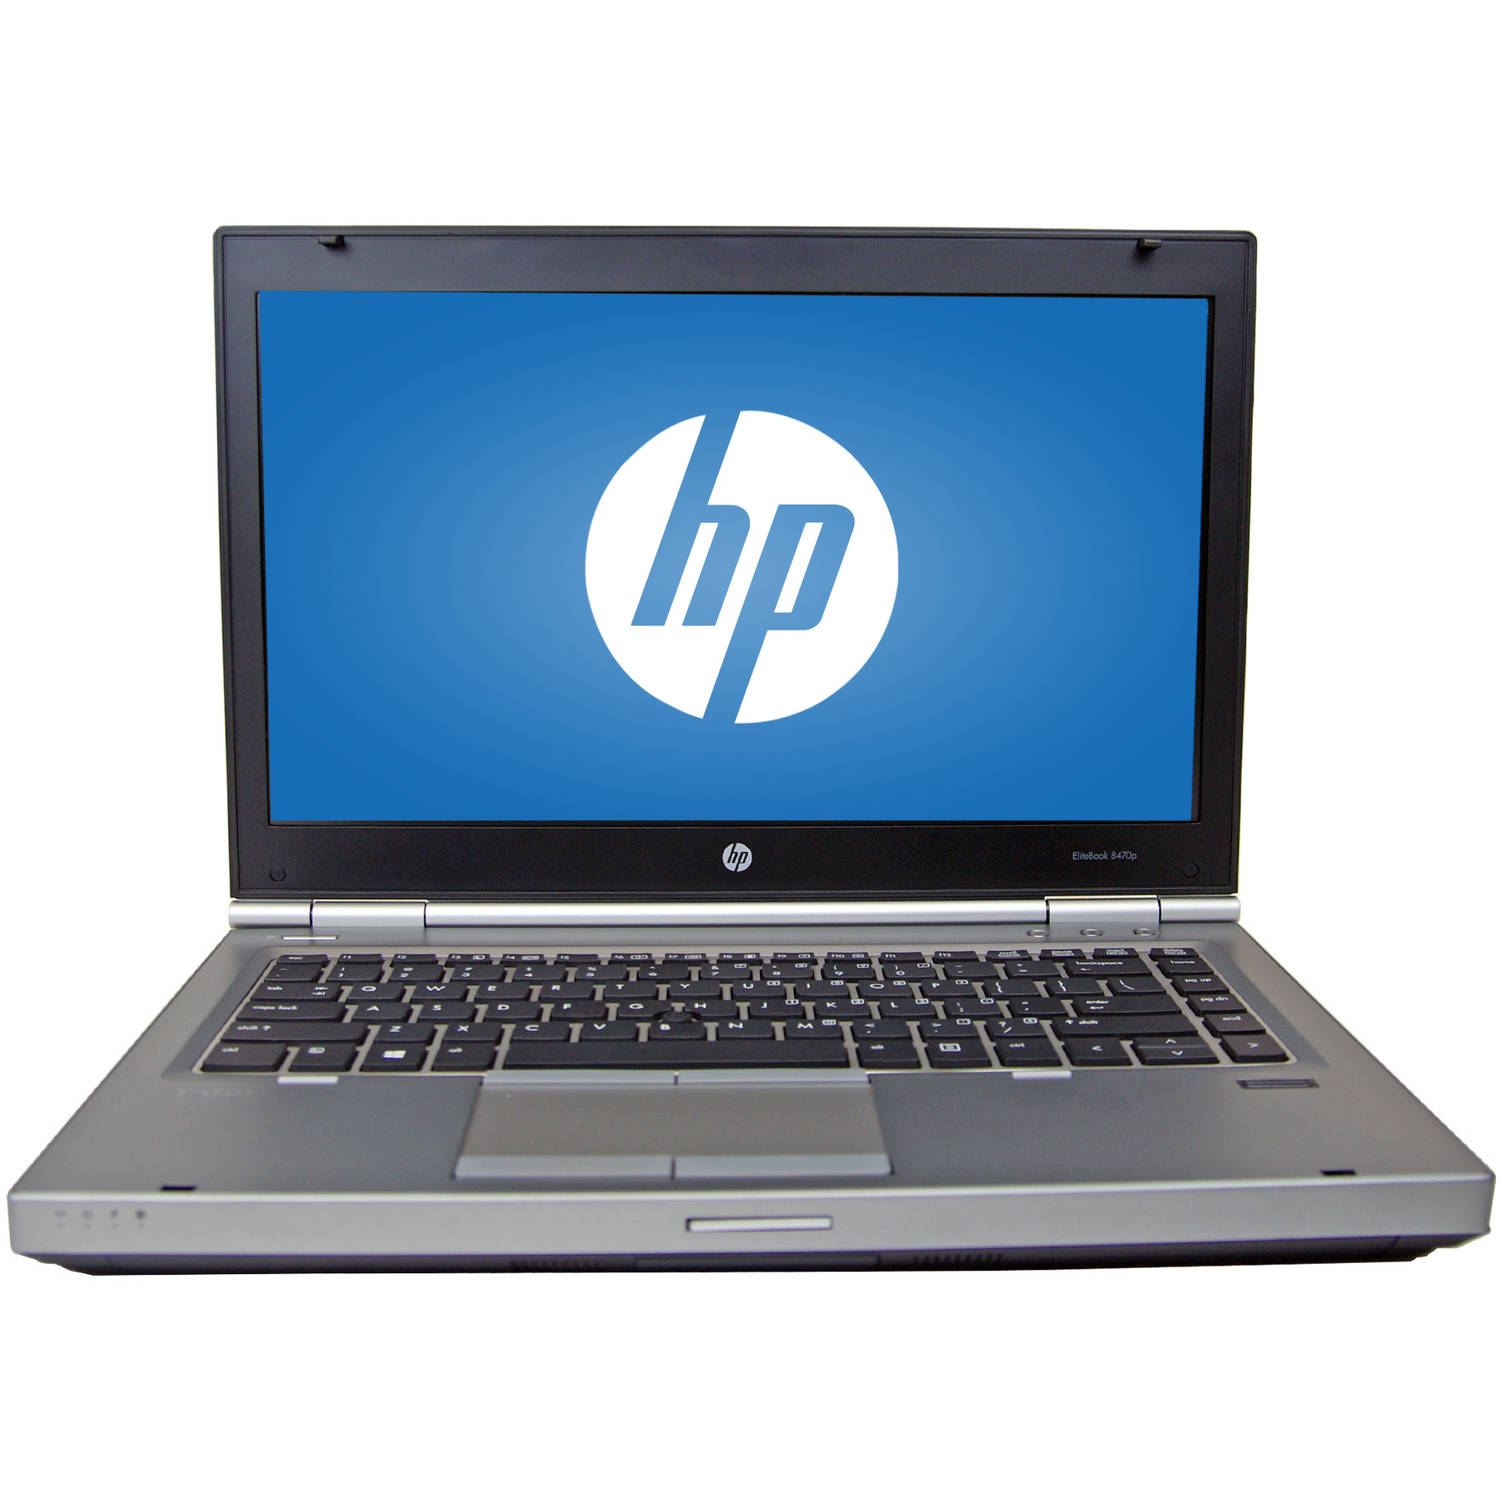 "Refurbished HP Silver 14"" Elitebook 8470P Laptop PC with Intel Core i5-3320M Processor, 12GB Memory, 750GB Hard Drive and Windows 7 Professional"